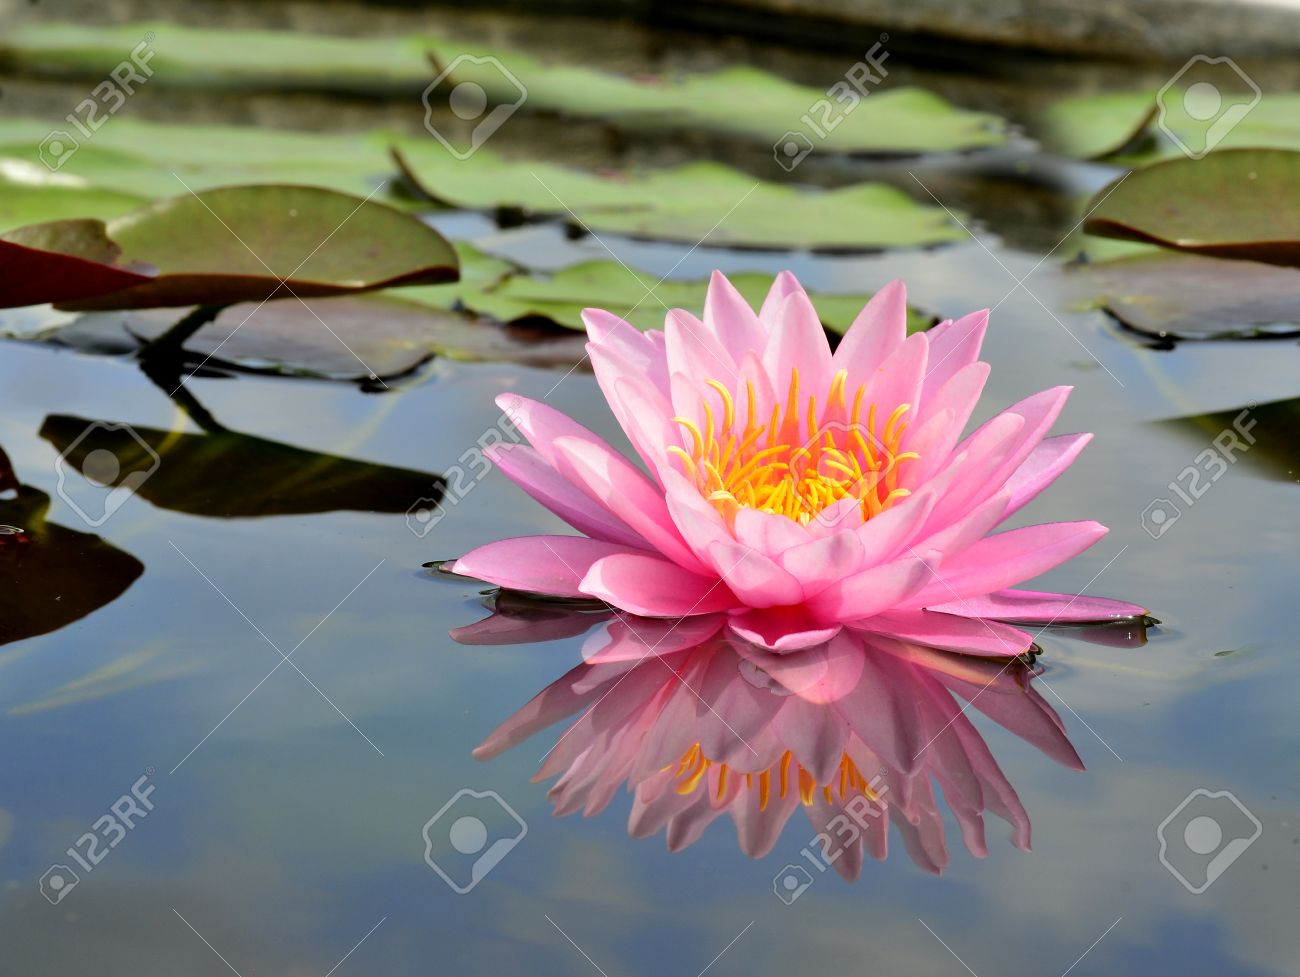 pink lotus flower or water lily with blue sky reflection in water, Natural flower